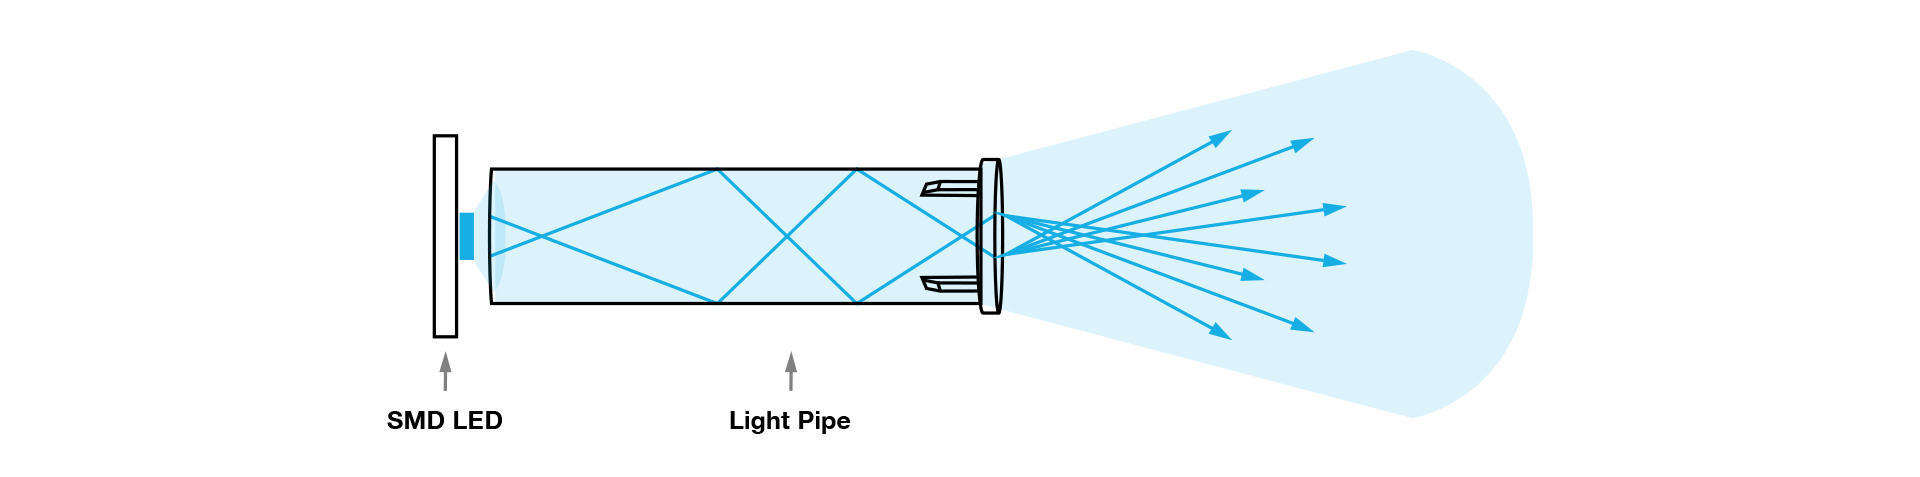 light pipe design guide